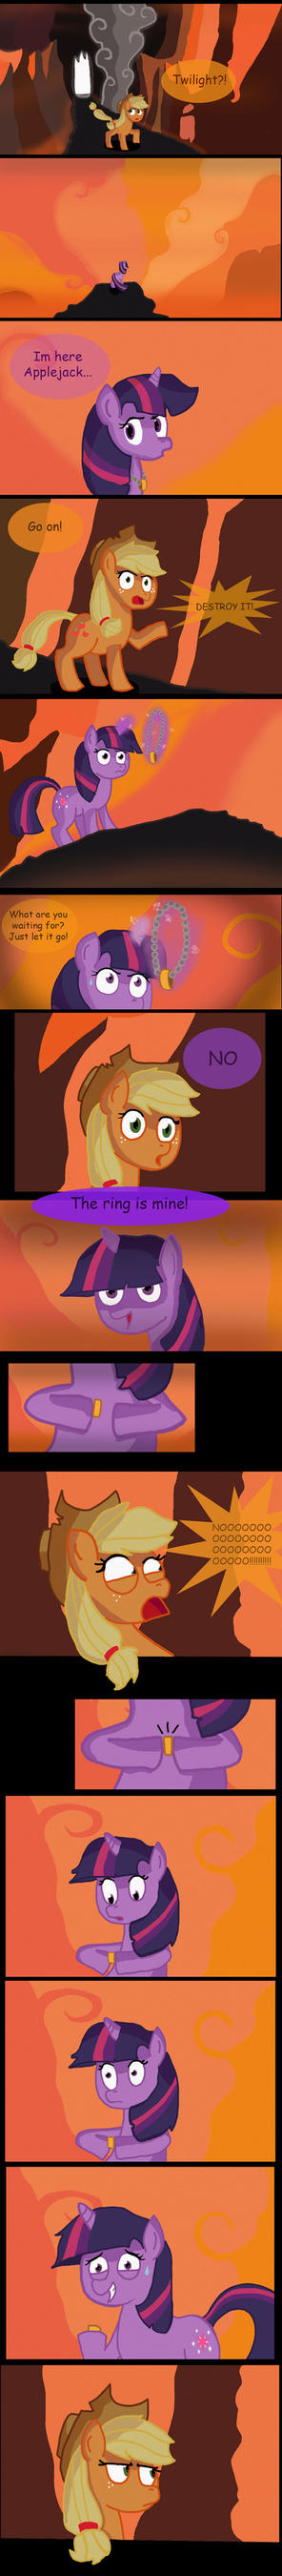 The Lord of the Ponies: The crack of doom by MrFulp